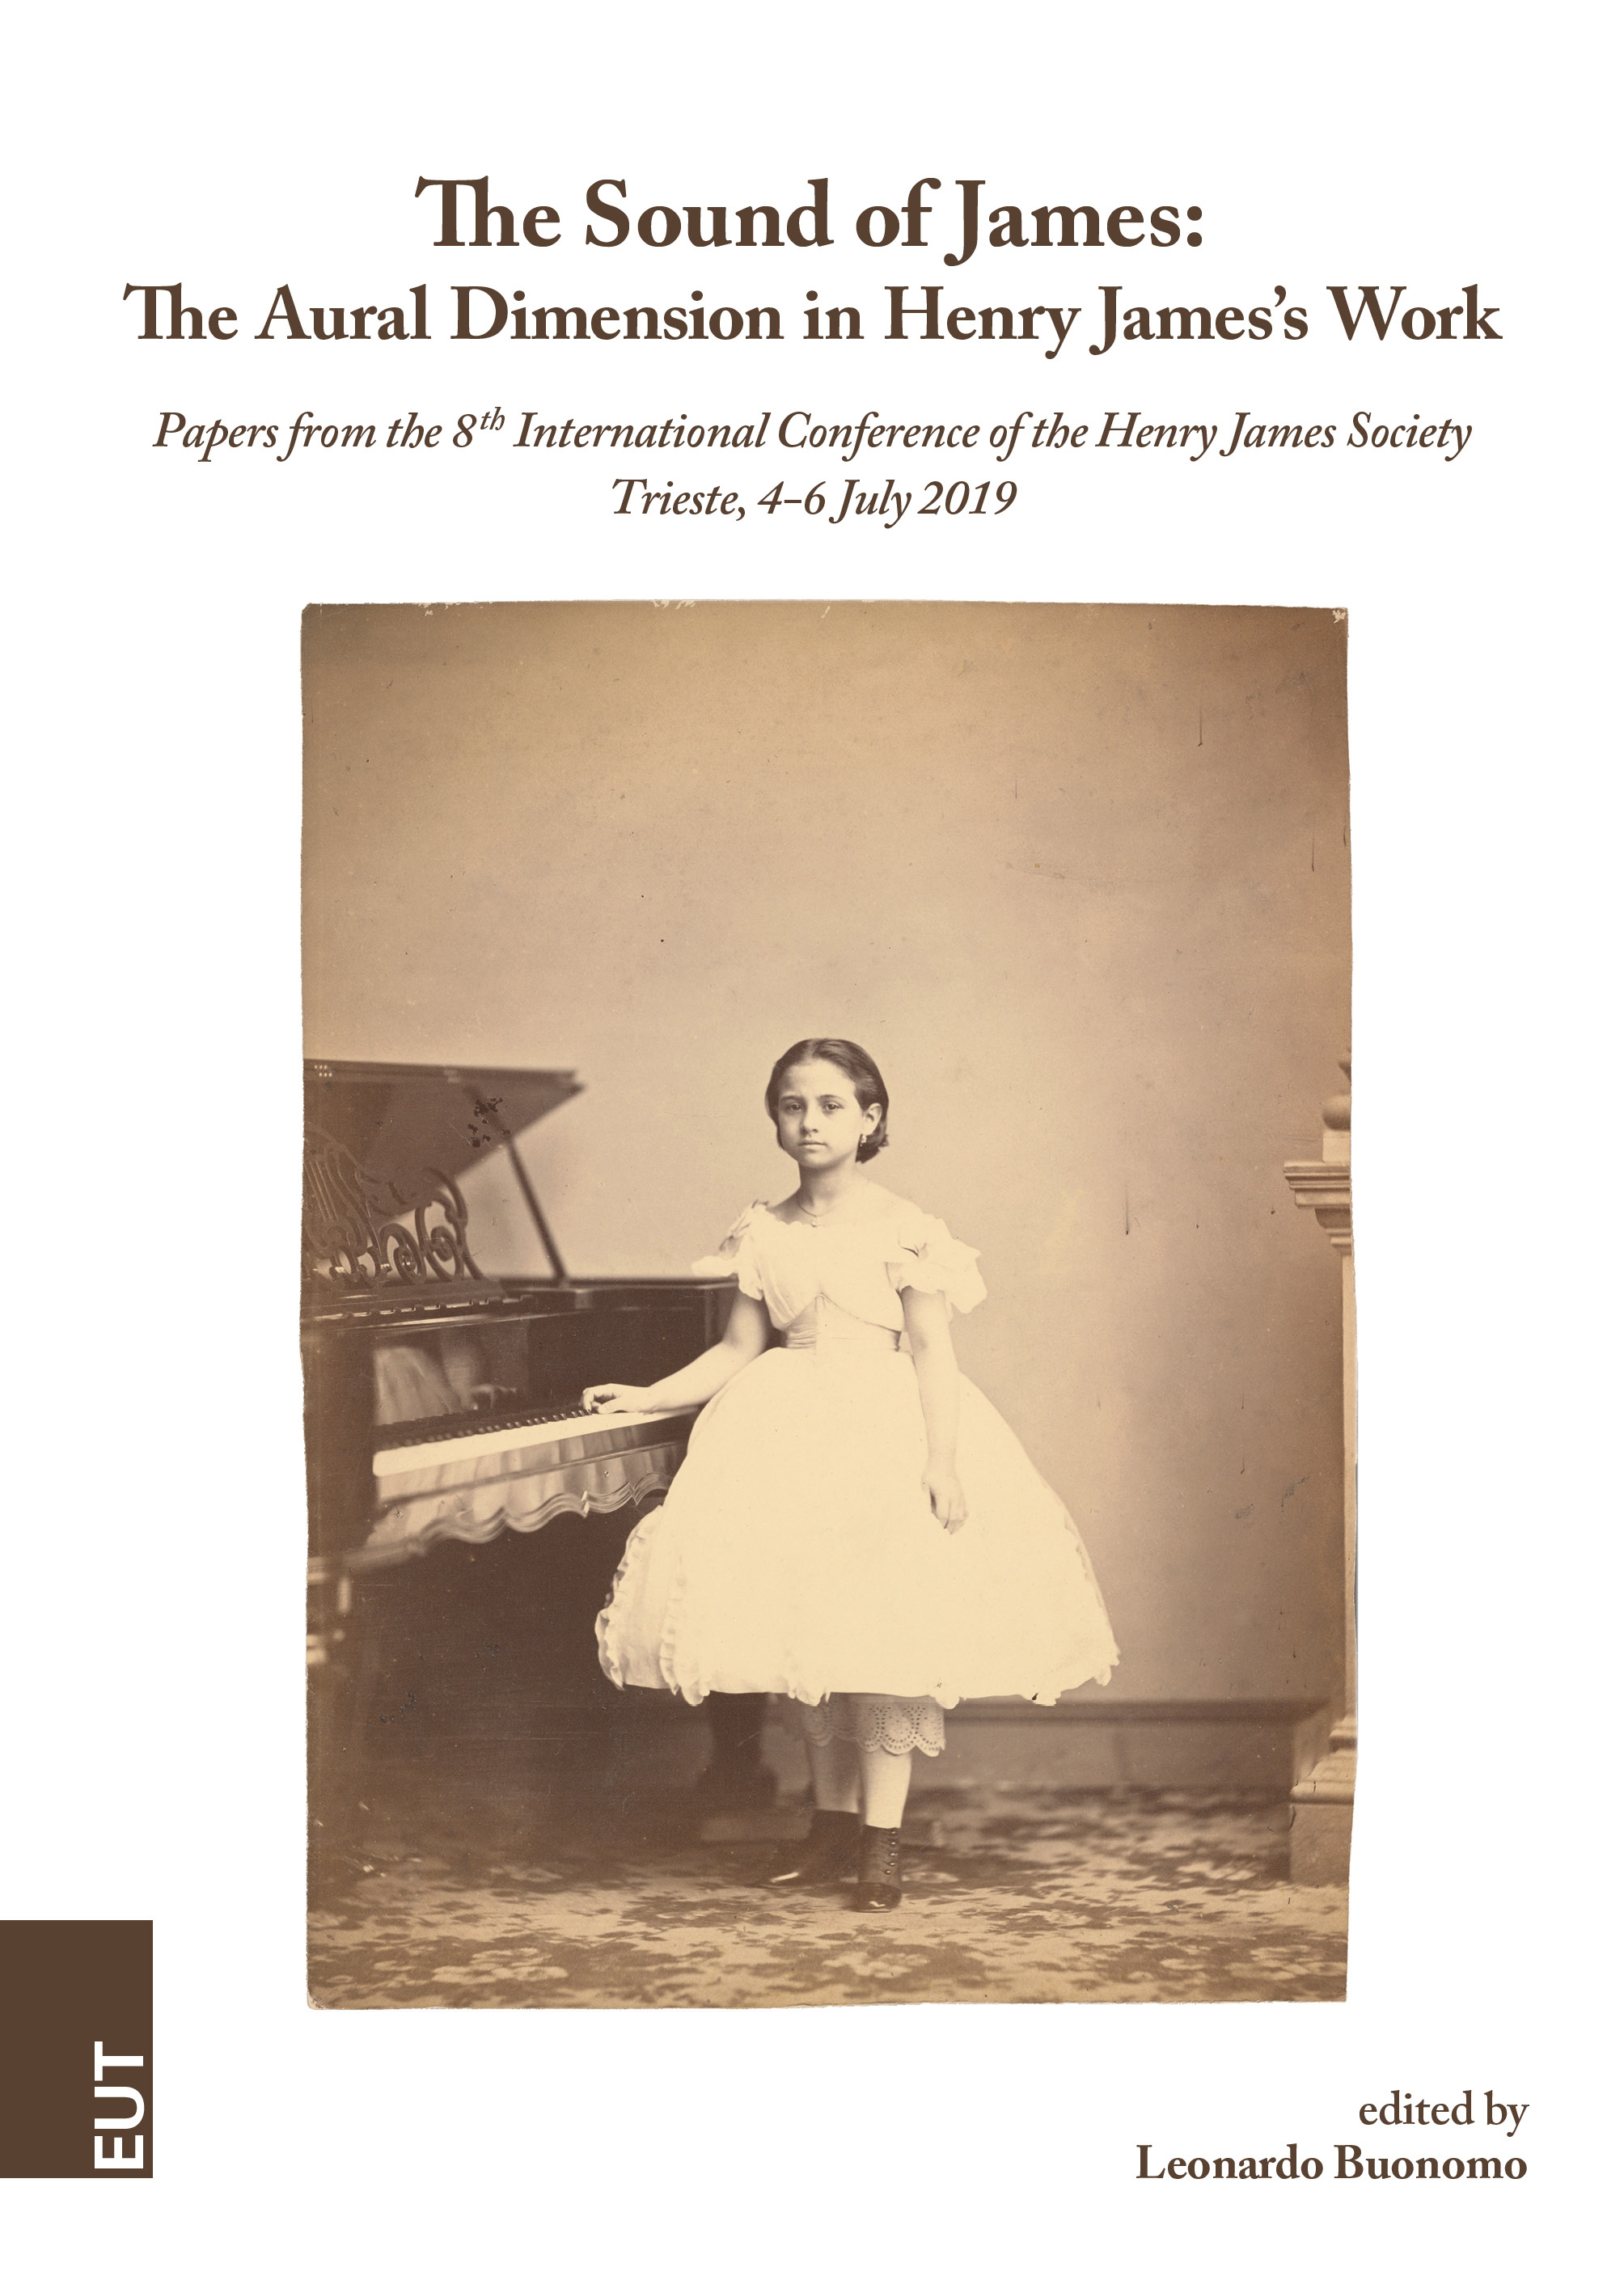 The Sound of James. The Aural Dimension in Henry James's Work. Papers from the 8th International Conference of the Henry James Society. Trieste, 4-6 July 2019